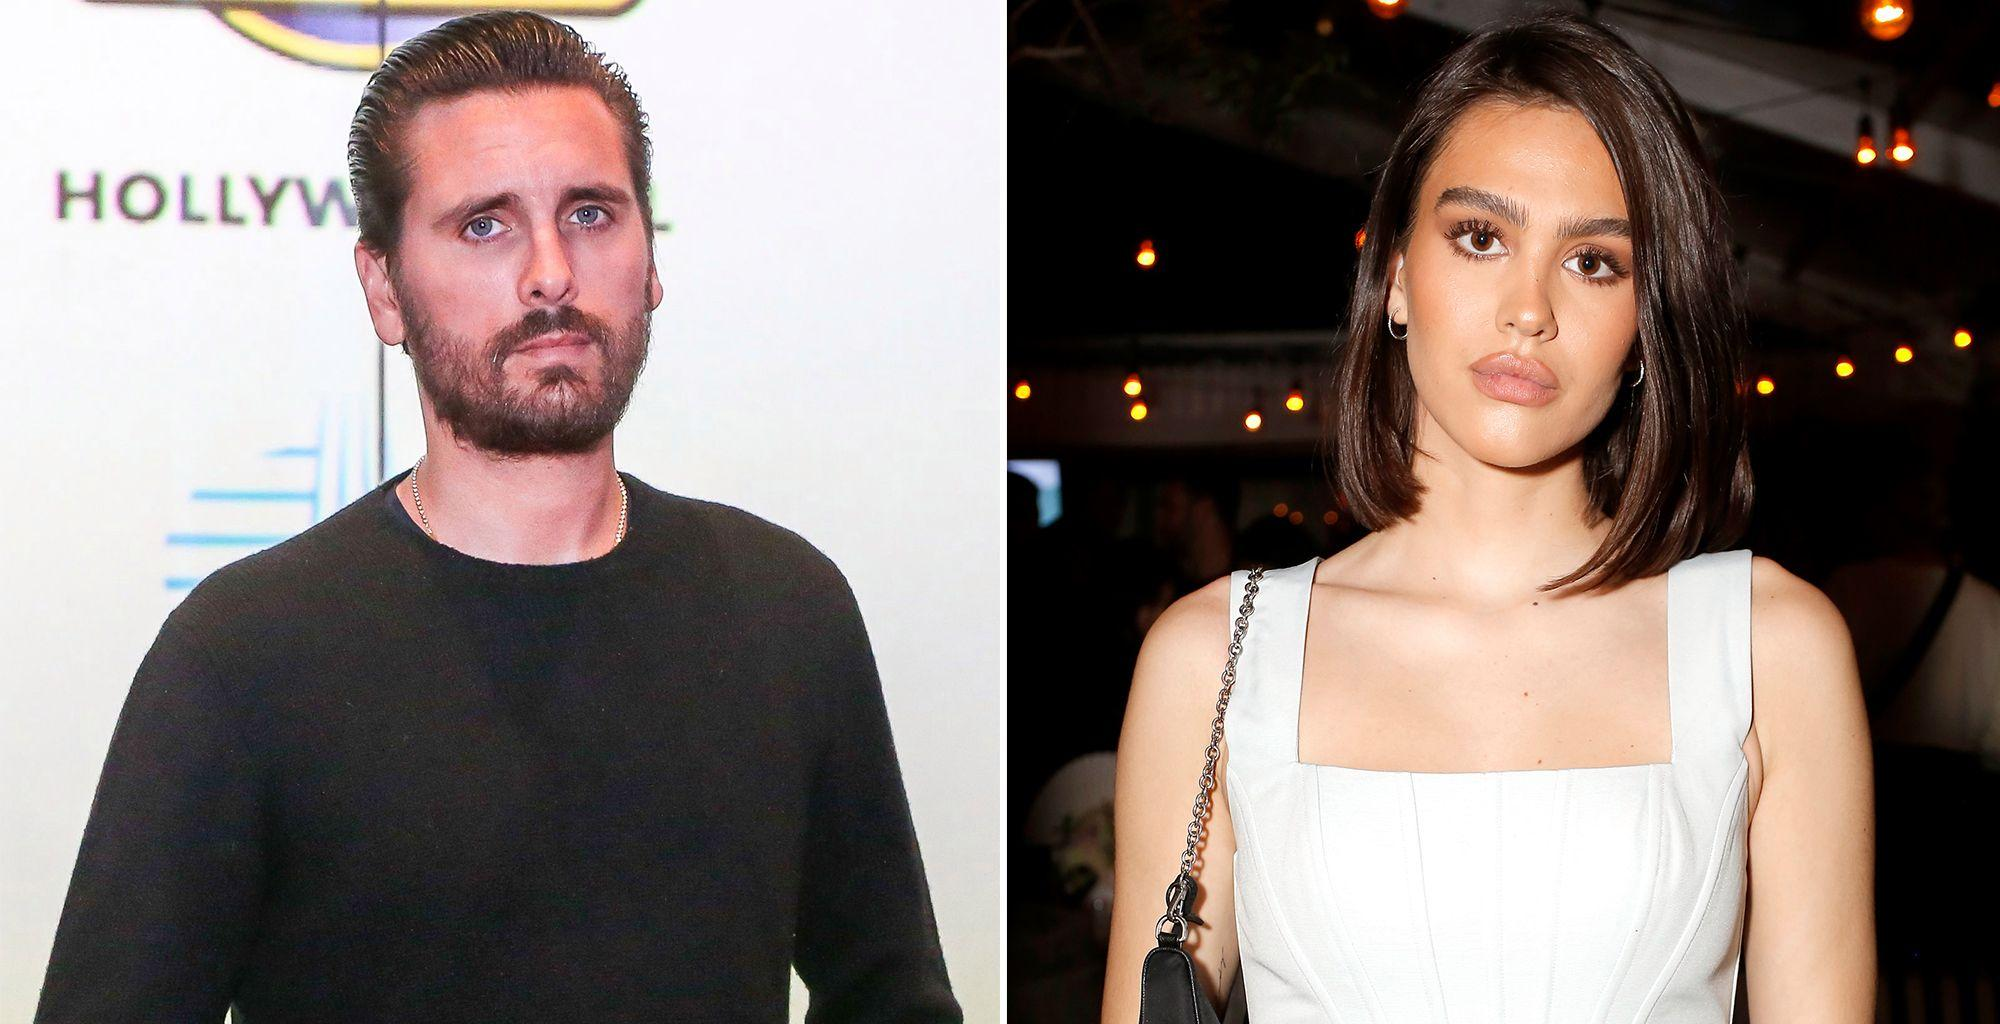 Scott Disick Ready To Settle Down With Amelia Hamlin? - Source Reveals!